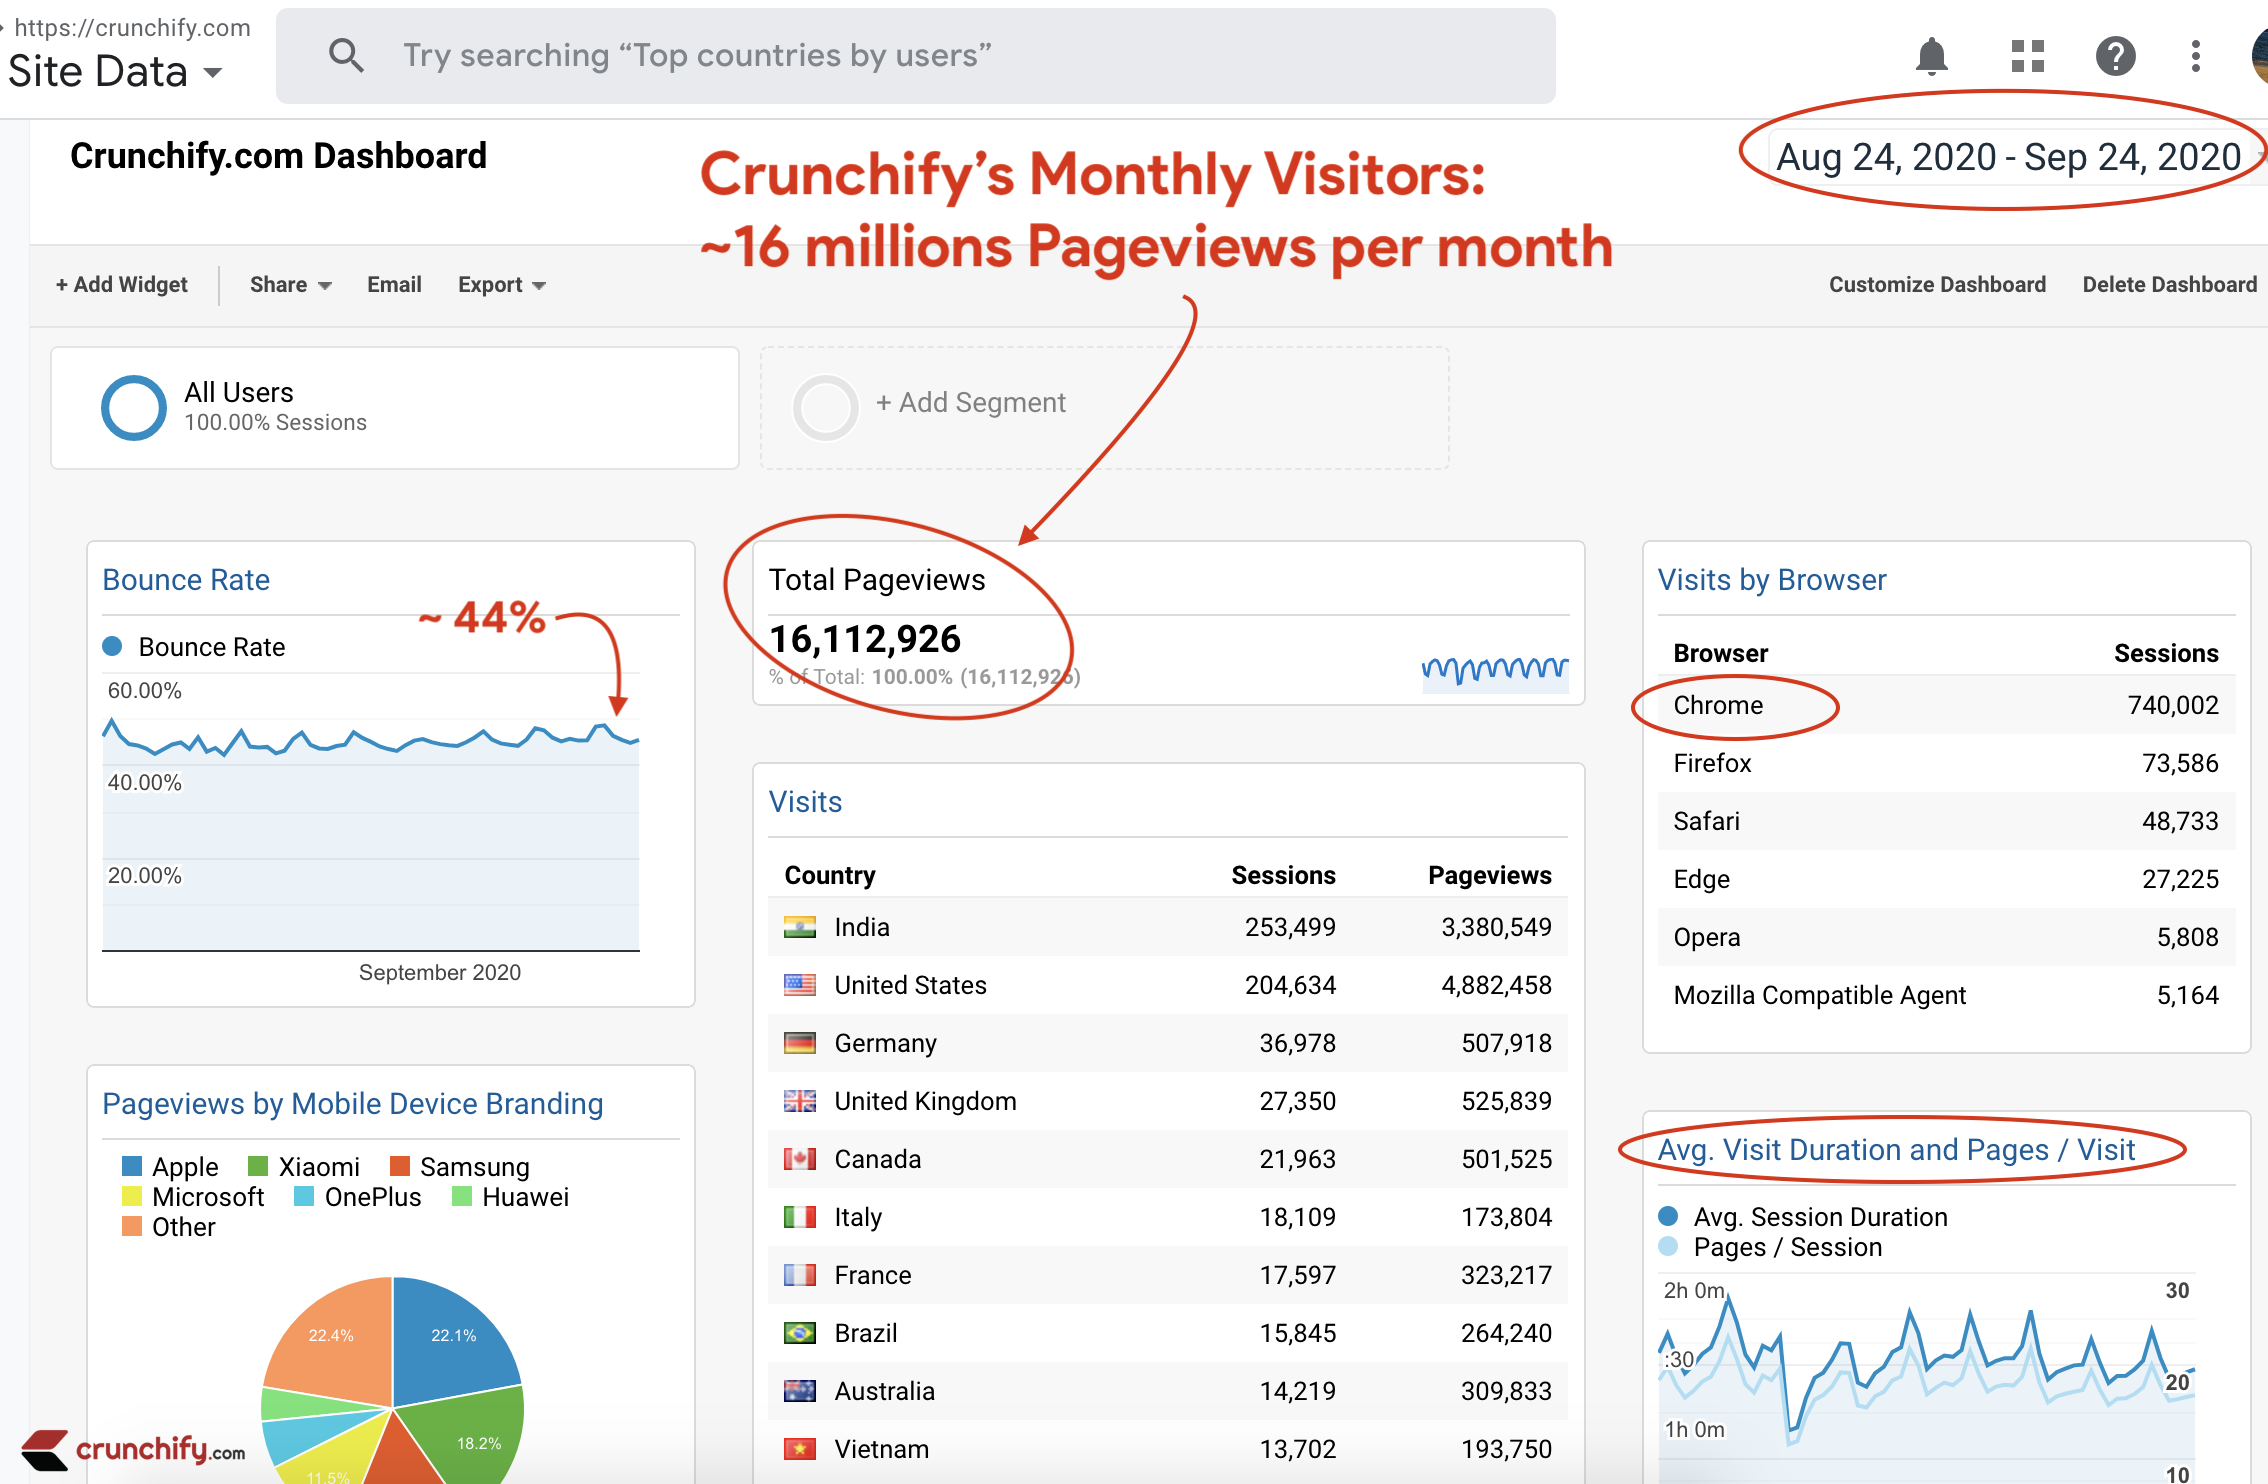 Crunchify.com Monthly Visitors - ~16 millions Pageview per month